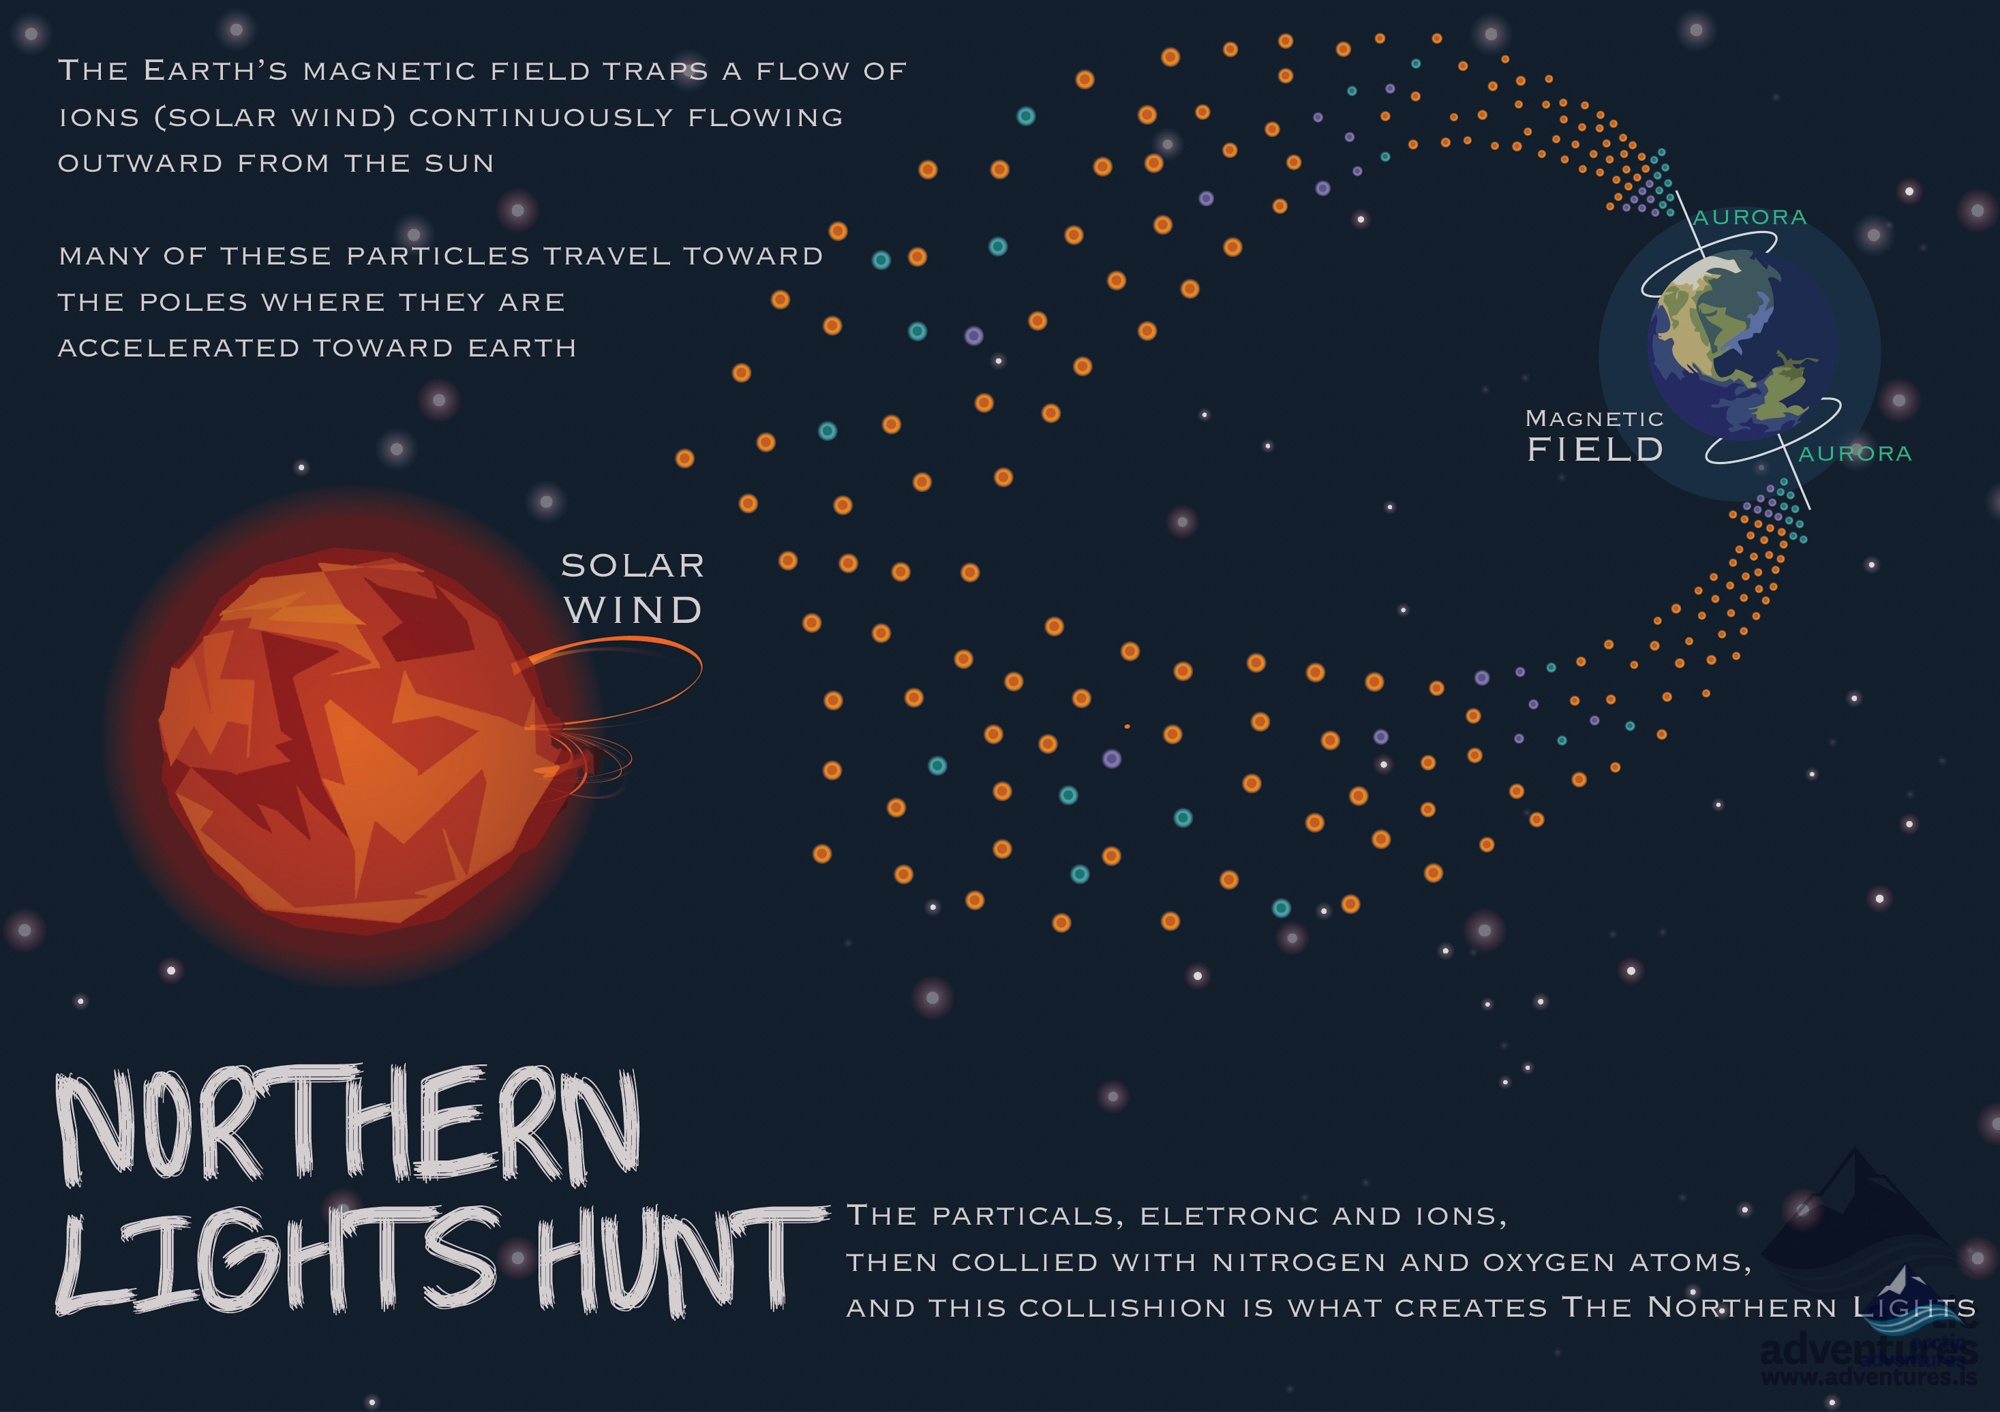 Northern Lights Explained